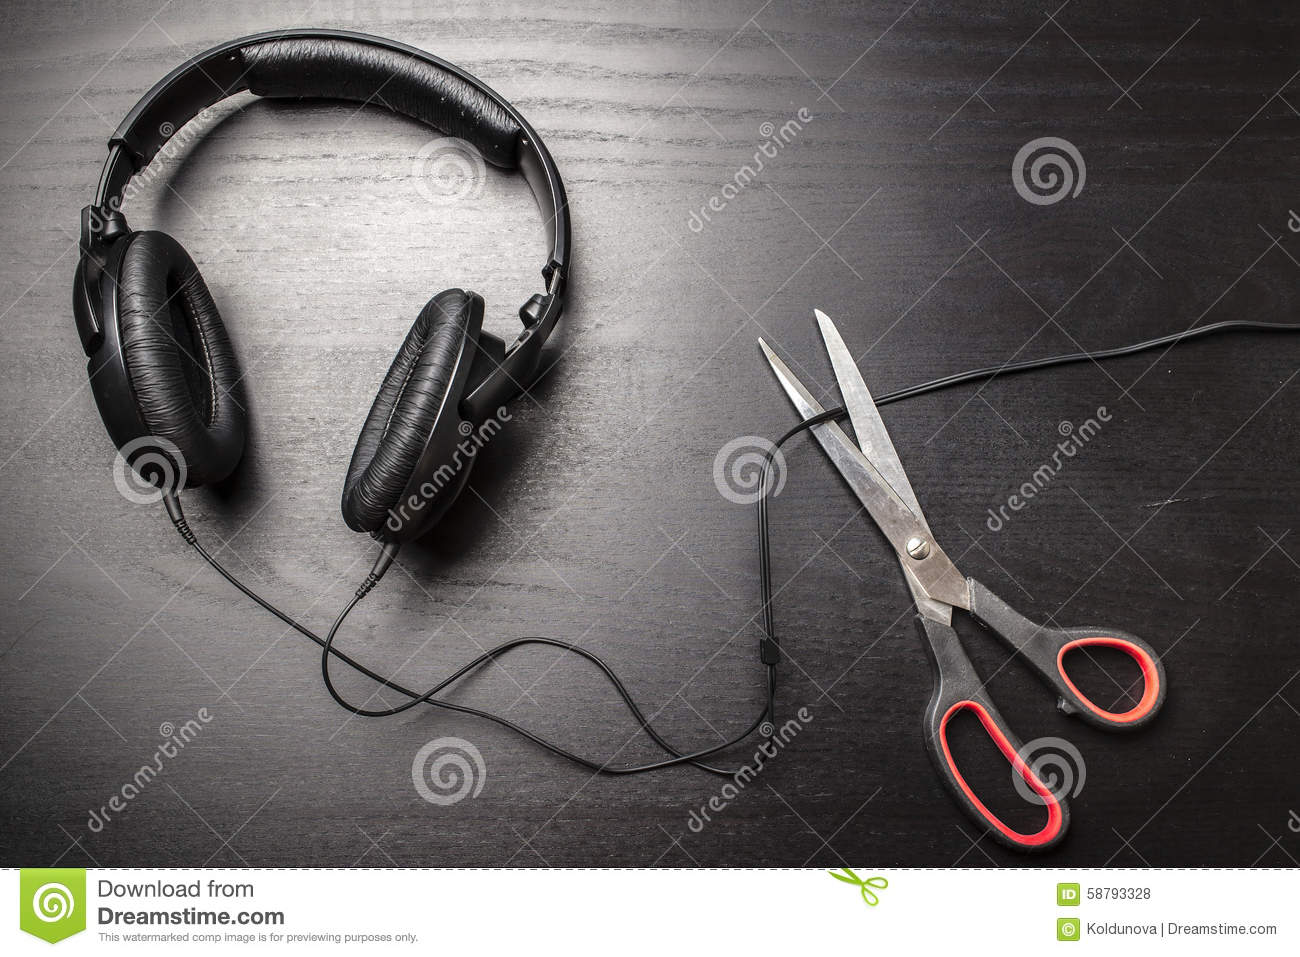 Scissors Cut The Wire From The Headphones, And Thus Stop The Very ...